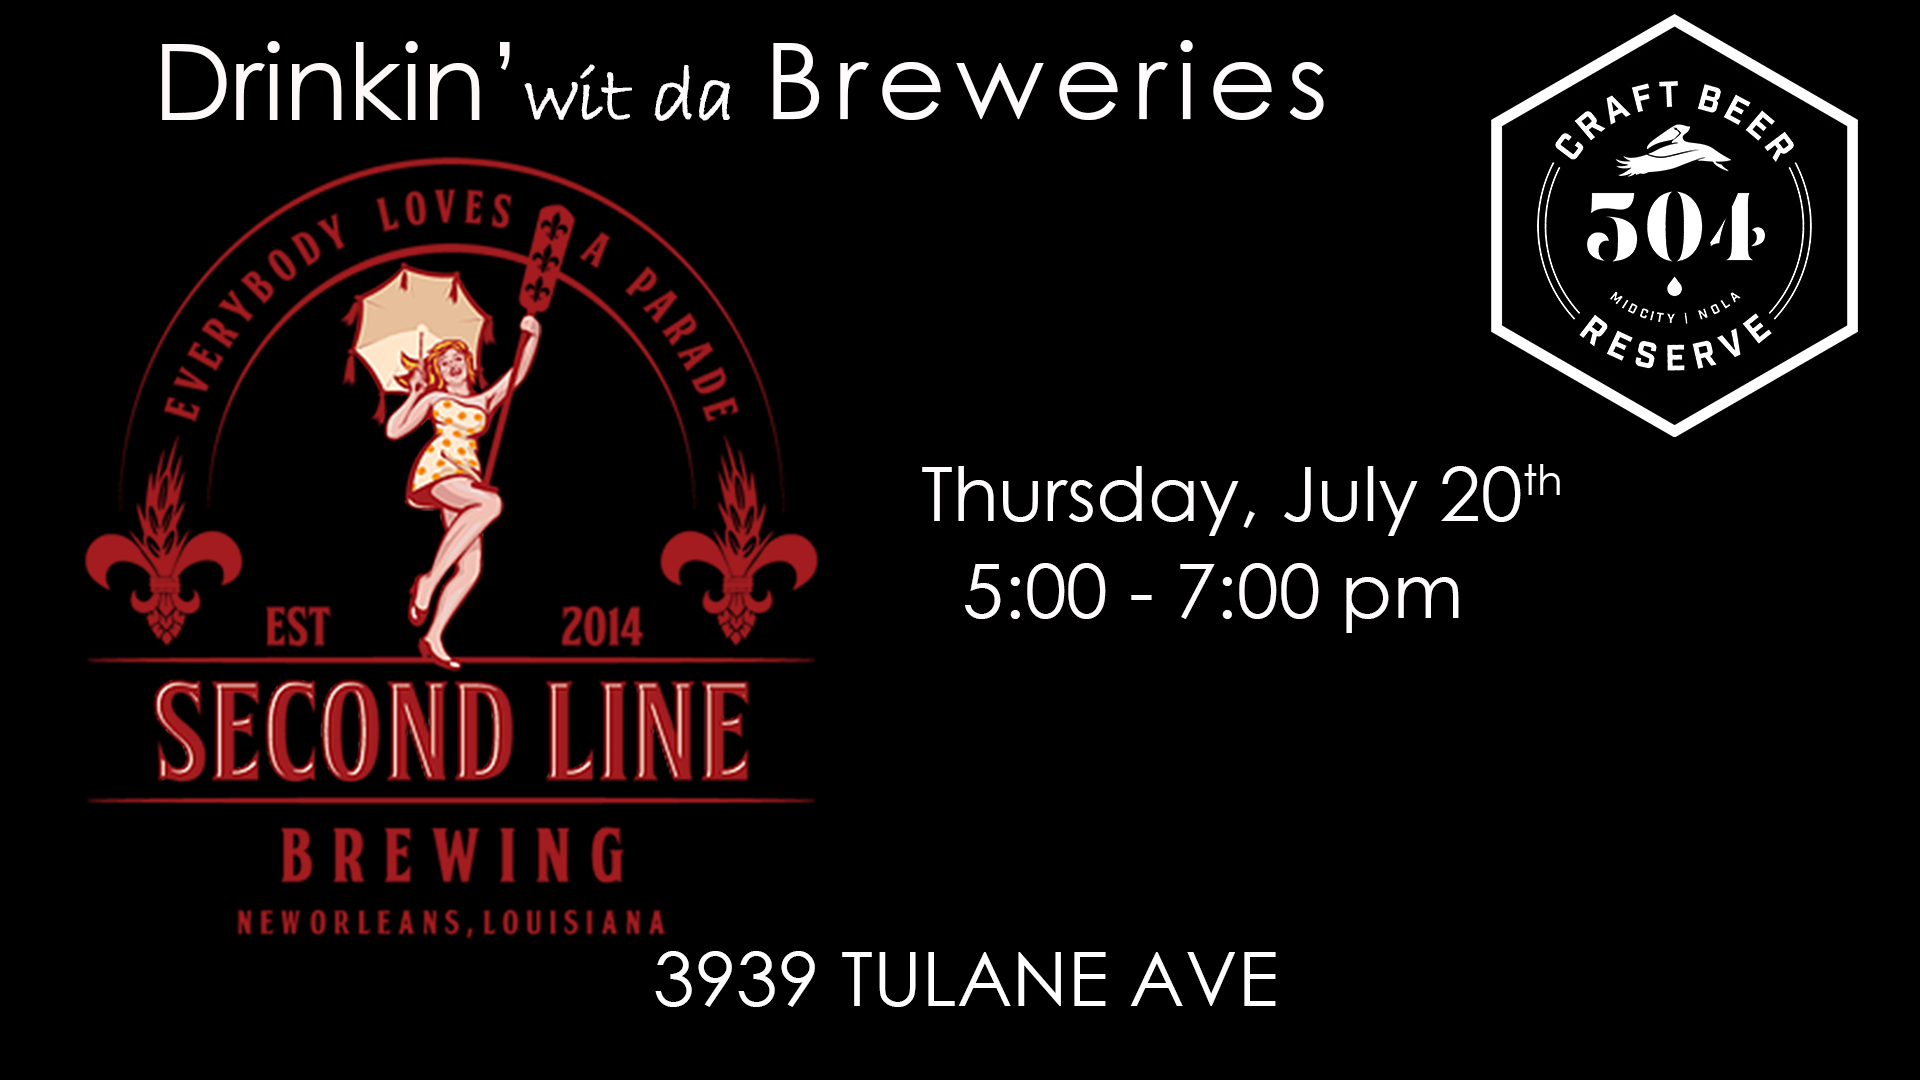 Saison Named Desire | AlryteAlryteAlryte | IPA | Route 47 | Batture Blonde | Cease to Love